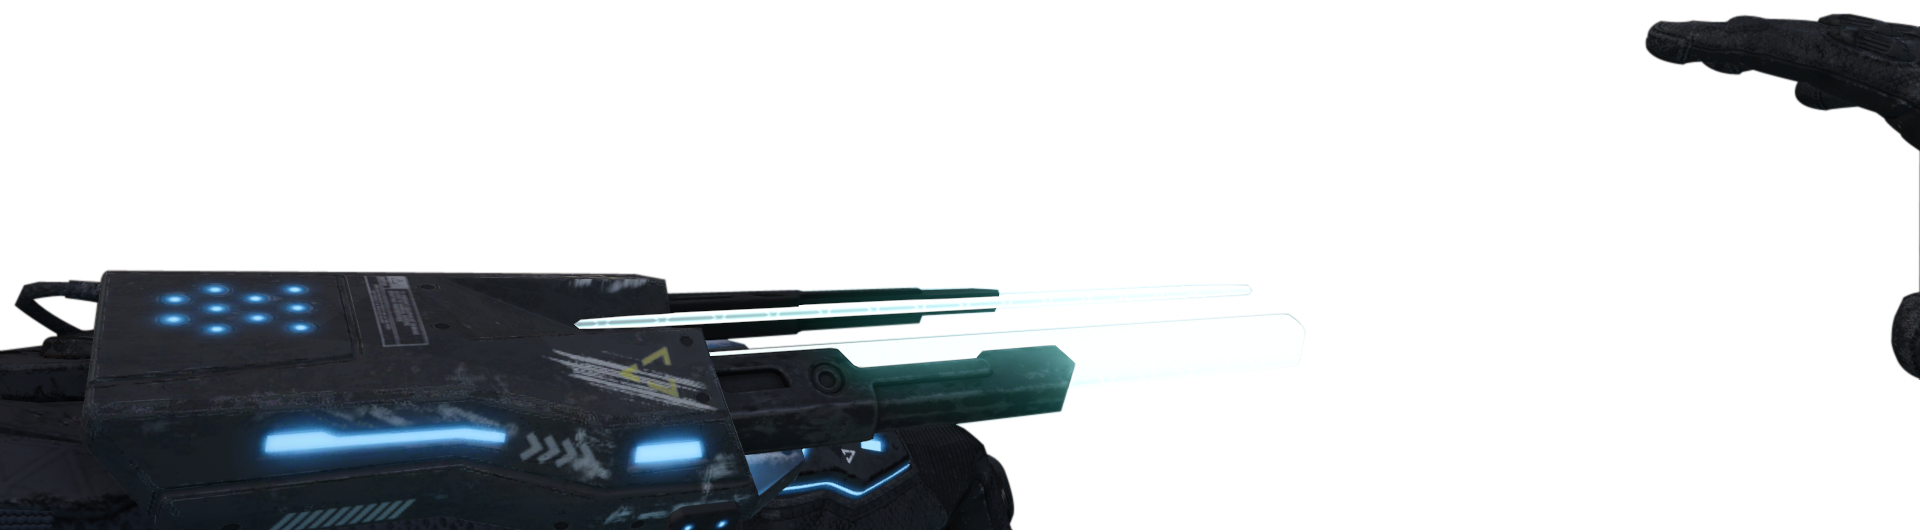 Black ops 3 ripper png. Image first person bo